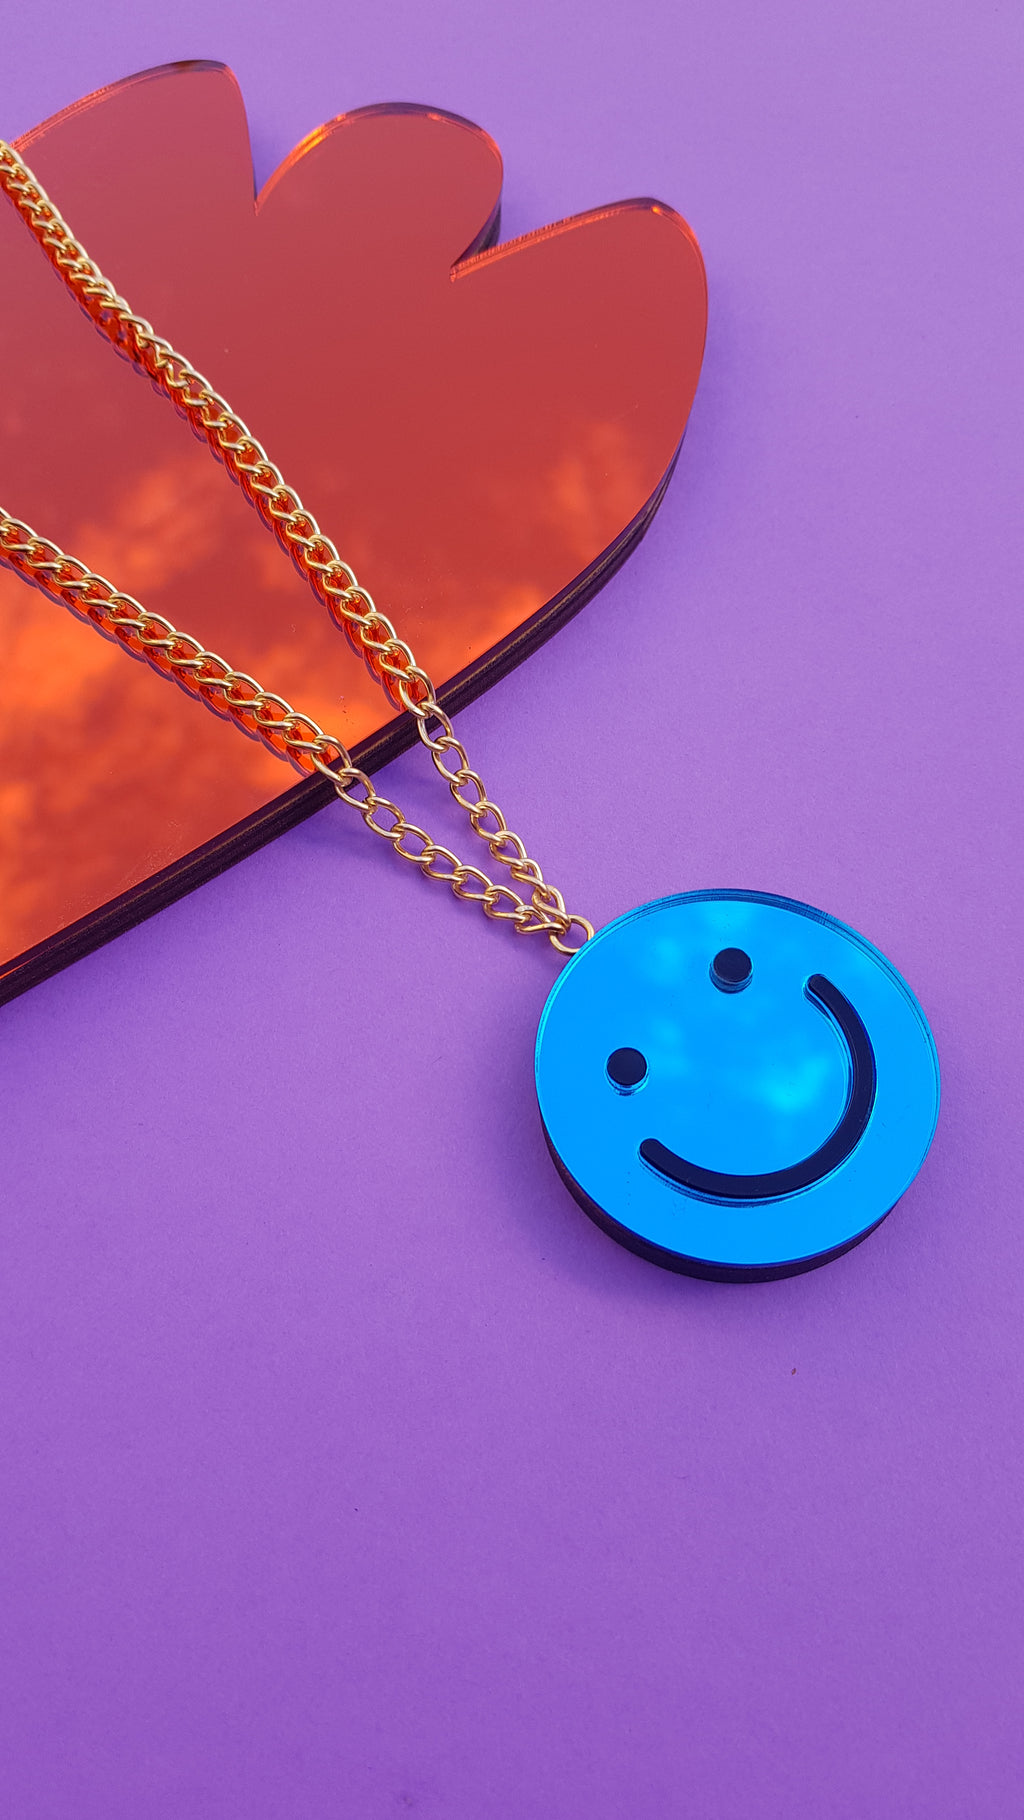 Single smiley face necklace